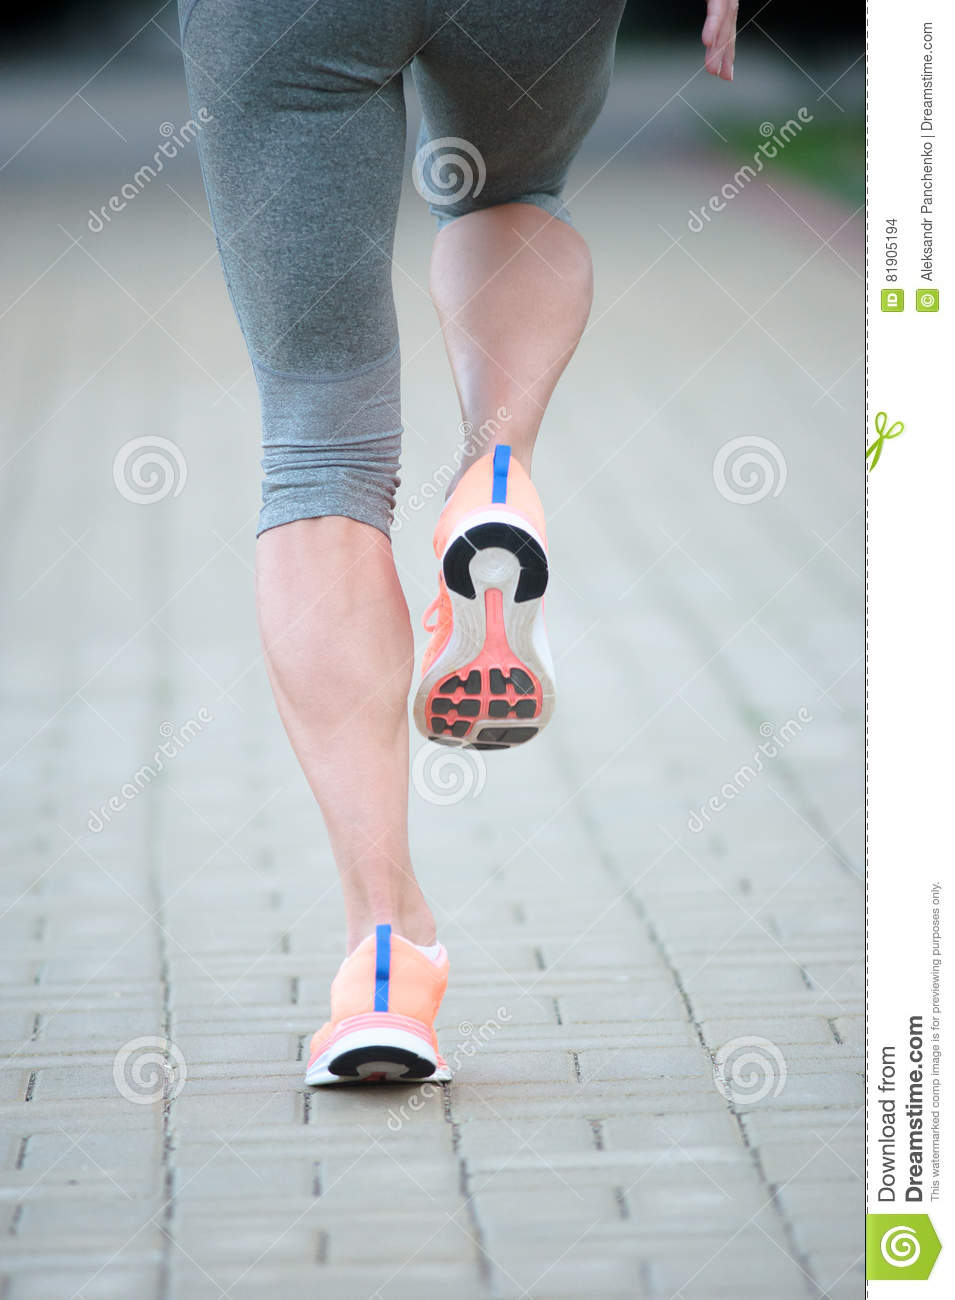 Athlete runner feet running on road closeup on shoe. woman fitness jog workout wellness concept.